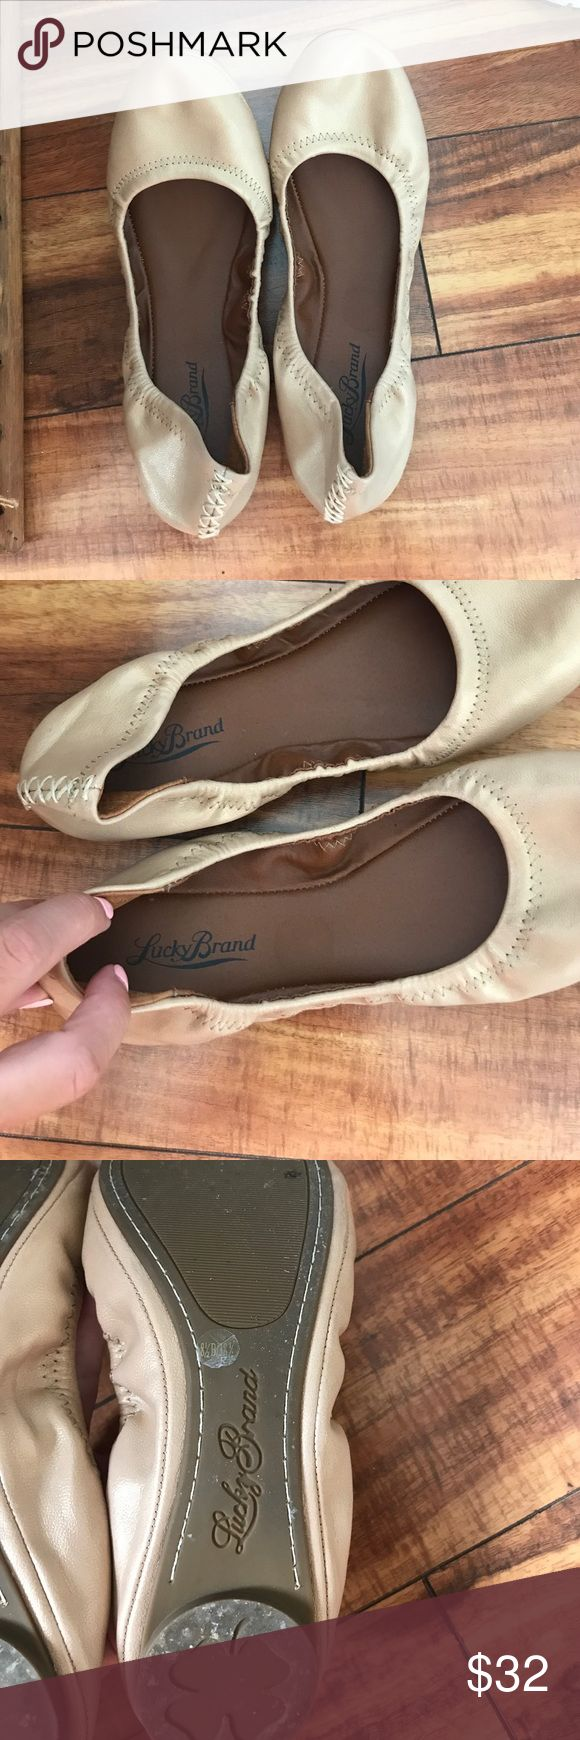 Lucky Brand Flats Only worn once Lucky Brand flats in champagne/tan color! Lucky Brand Shoes Flats & Loafers